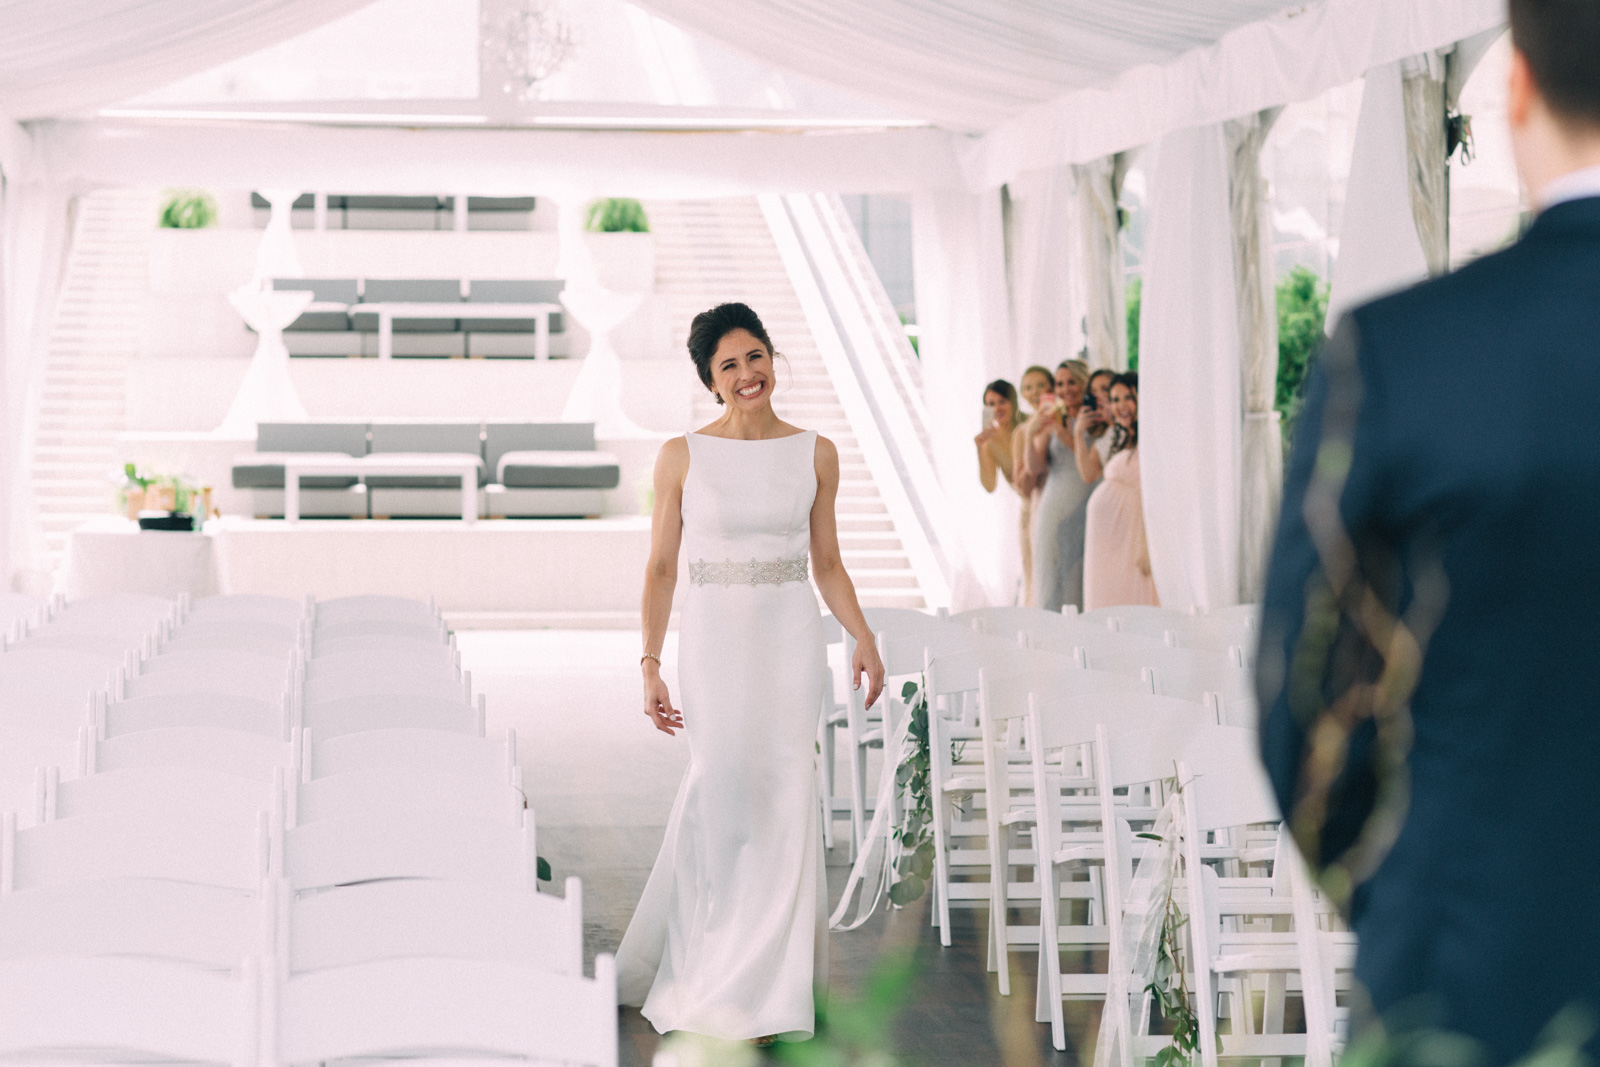 Malaparte-wedding-photography-Toronto-by-Sam-Wong-of-Artanis-Collective_25.jpg